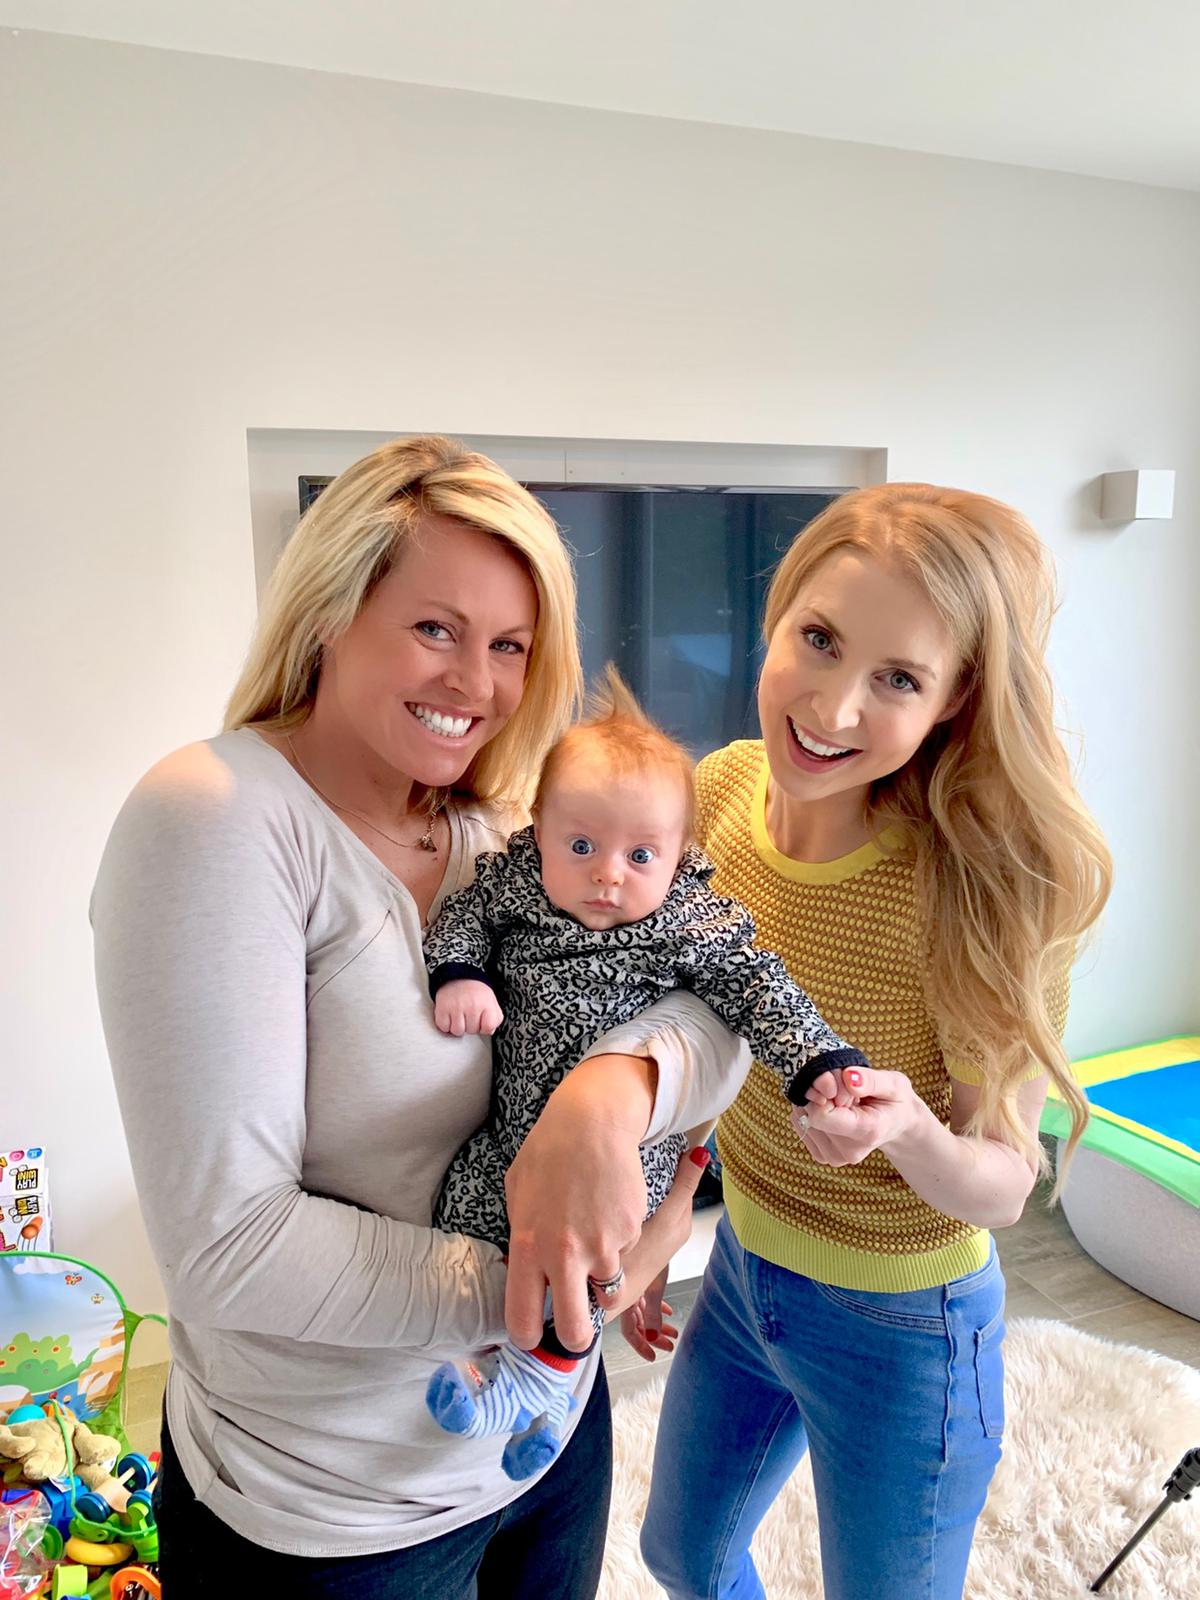 Filming healthHackers Ep 31 with Chemmy and baby Cooper